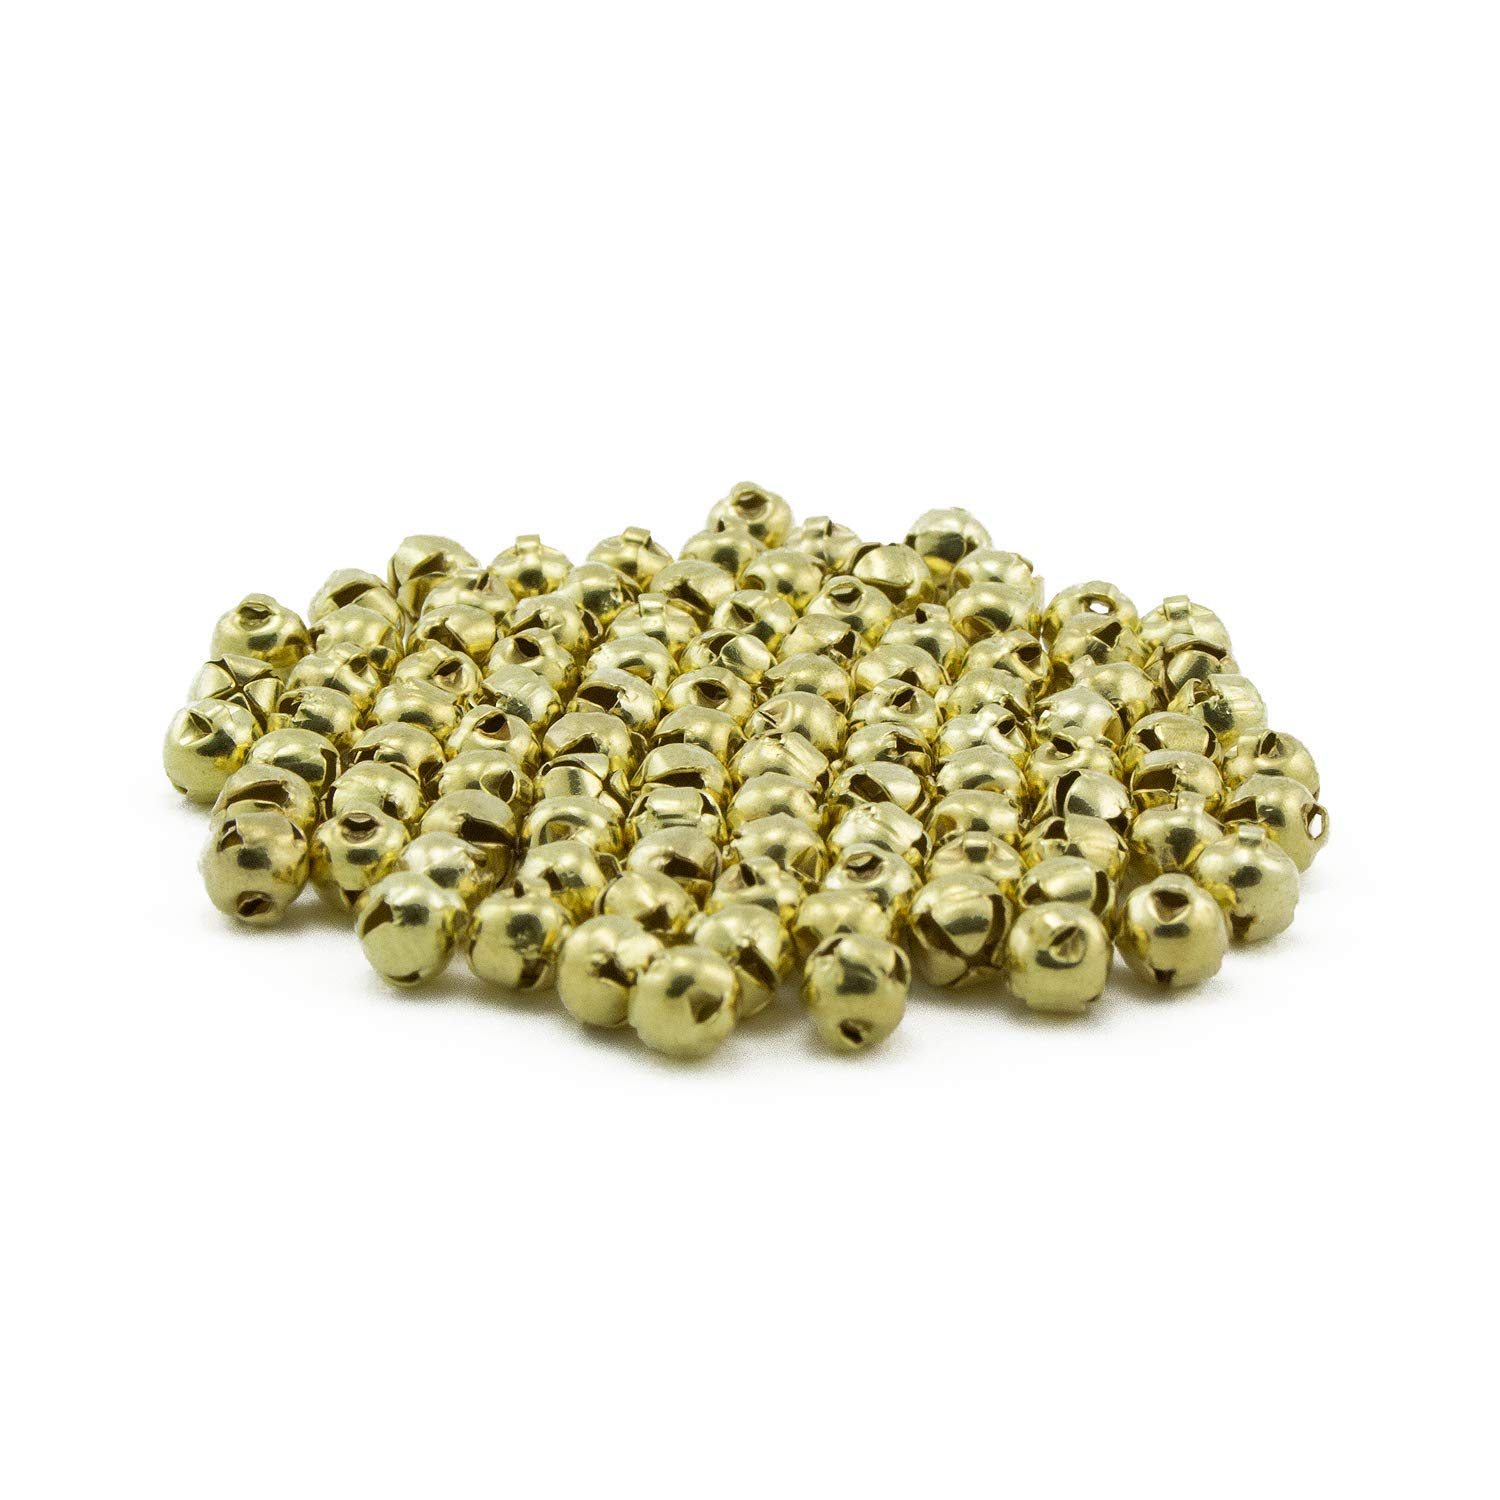 0.25 Inch 6mm Tiny Gold Jingle Bells Charms Bulk 100 Pieces